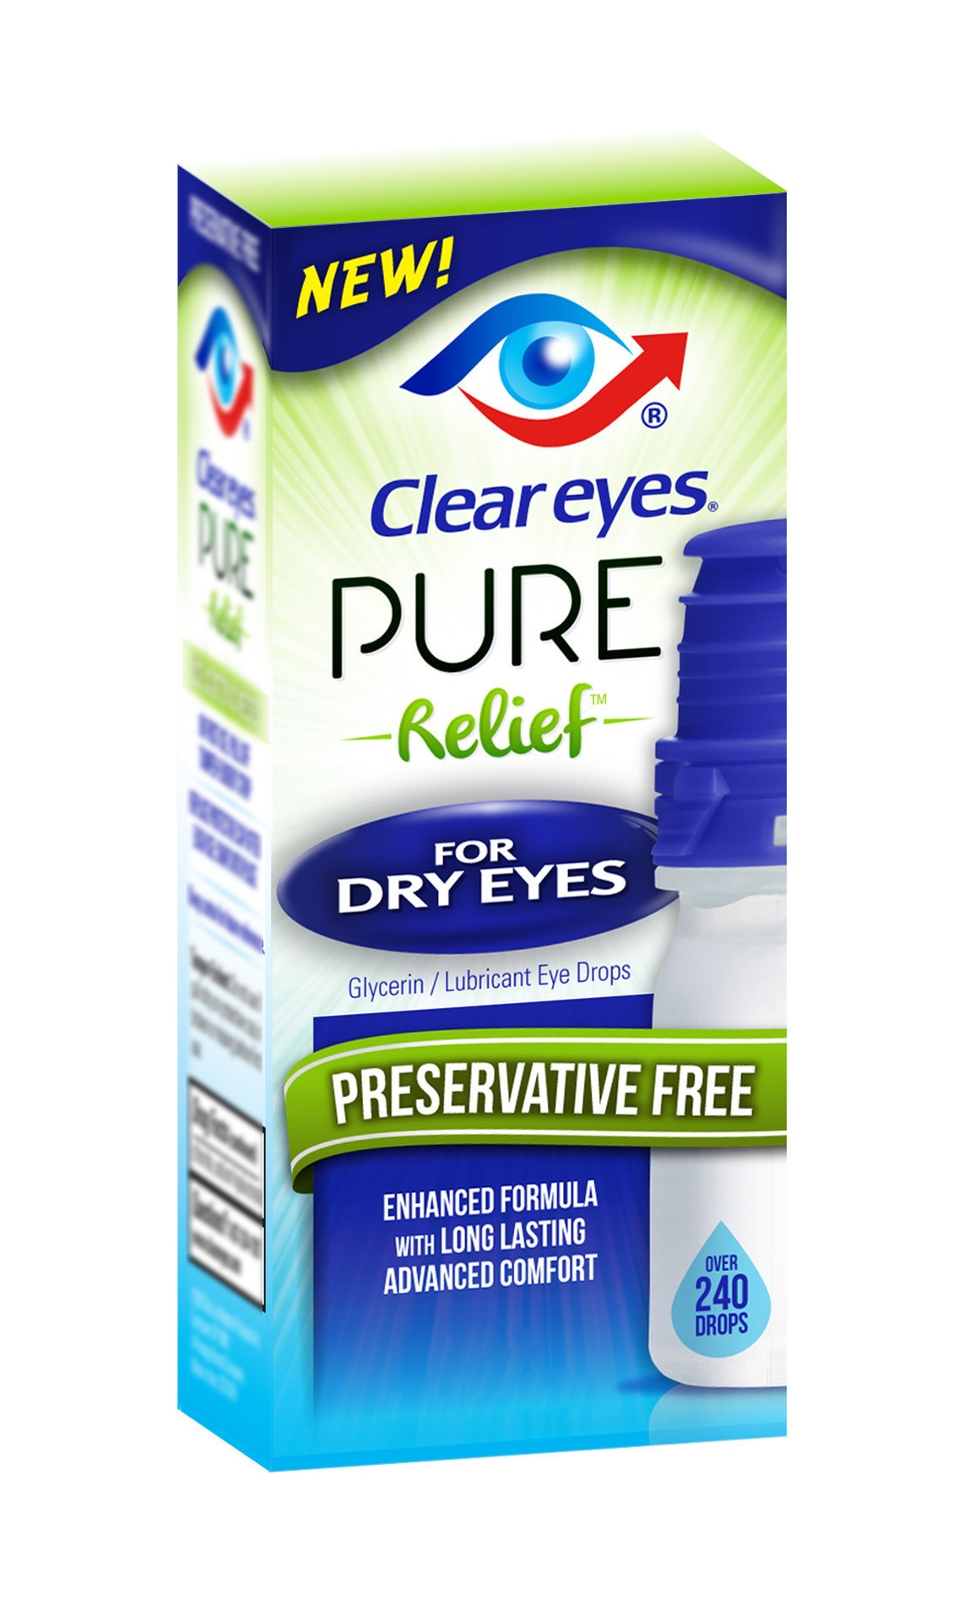 Clear eyes coupon 2018